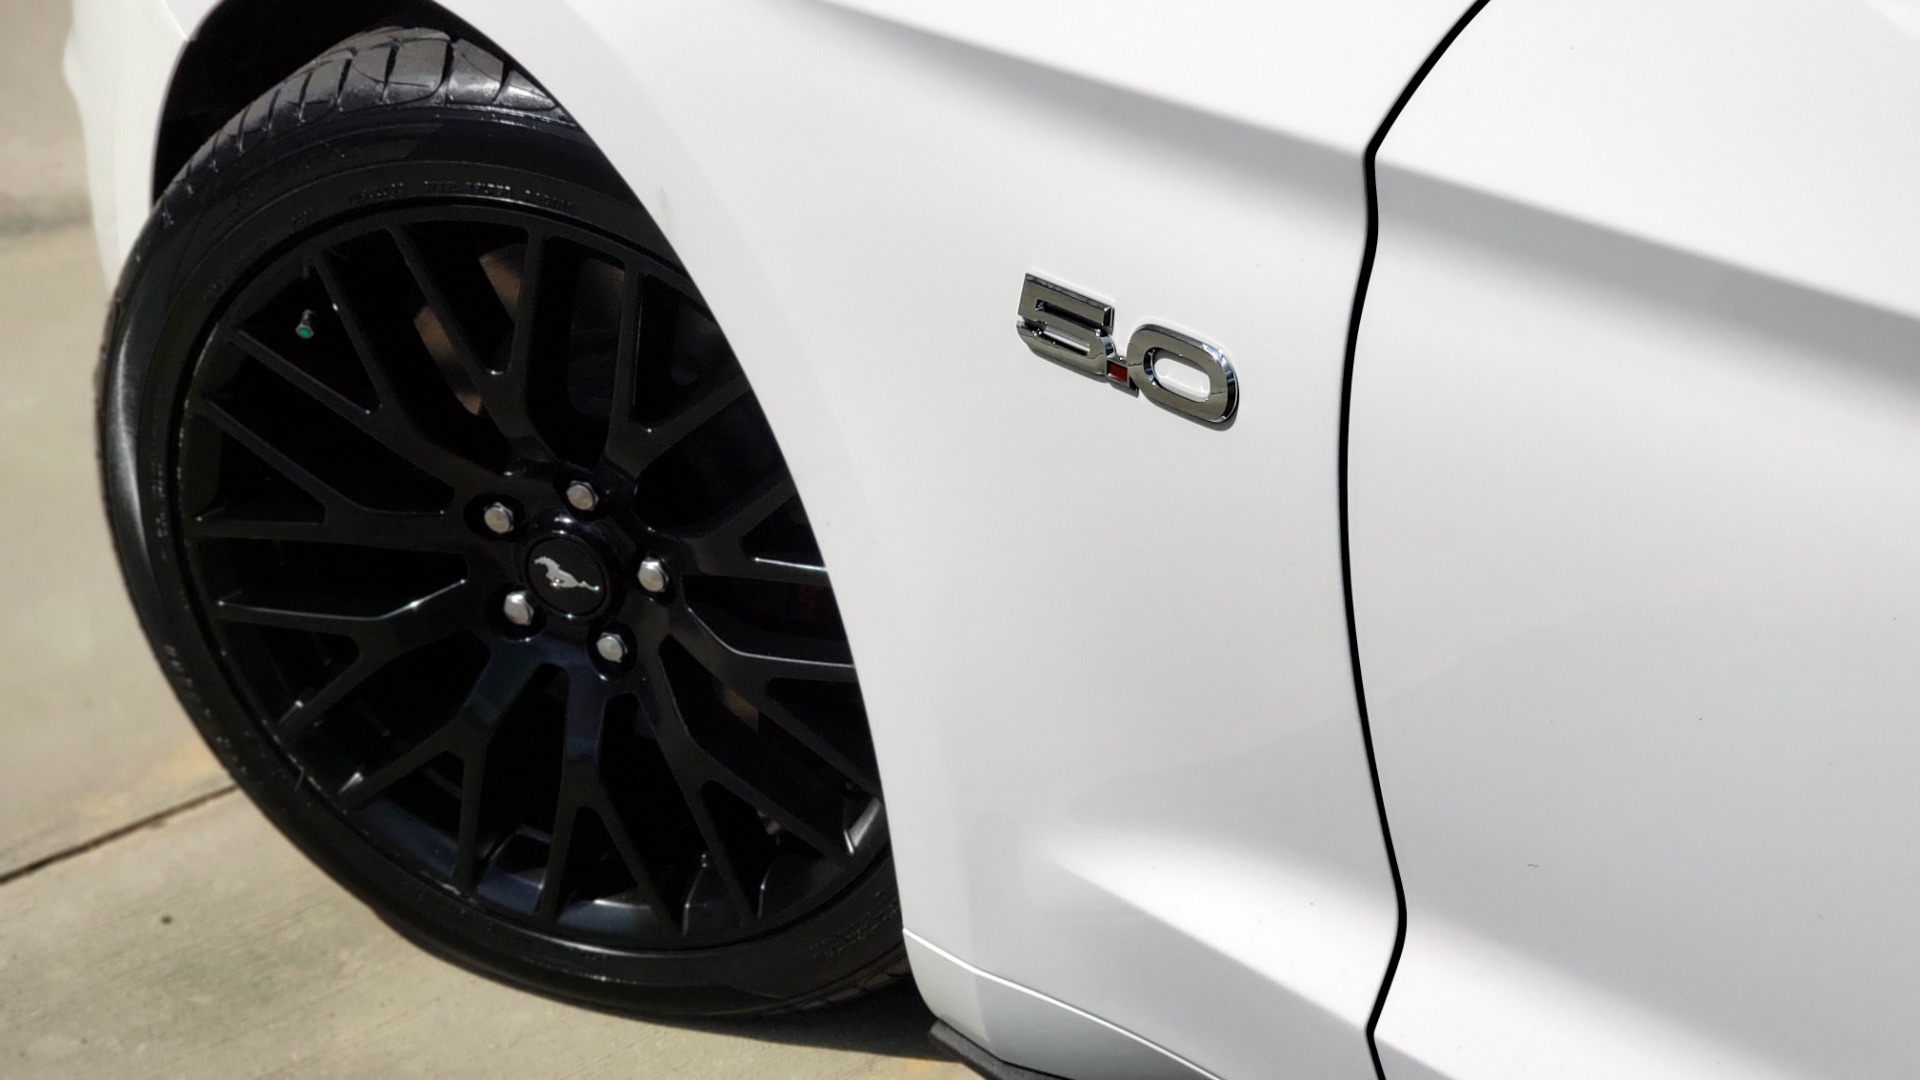 Used 2018 Ford MUSTANG GT COUPE / 5.0L V8 / AUTO / PERF PKG / REARVIEW / 19IN WHLS for sale Sold at Formula Imports in Charlotte NC 28227 75